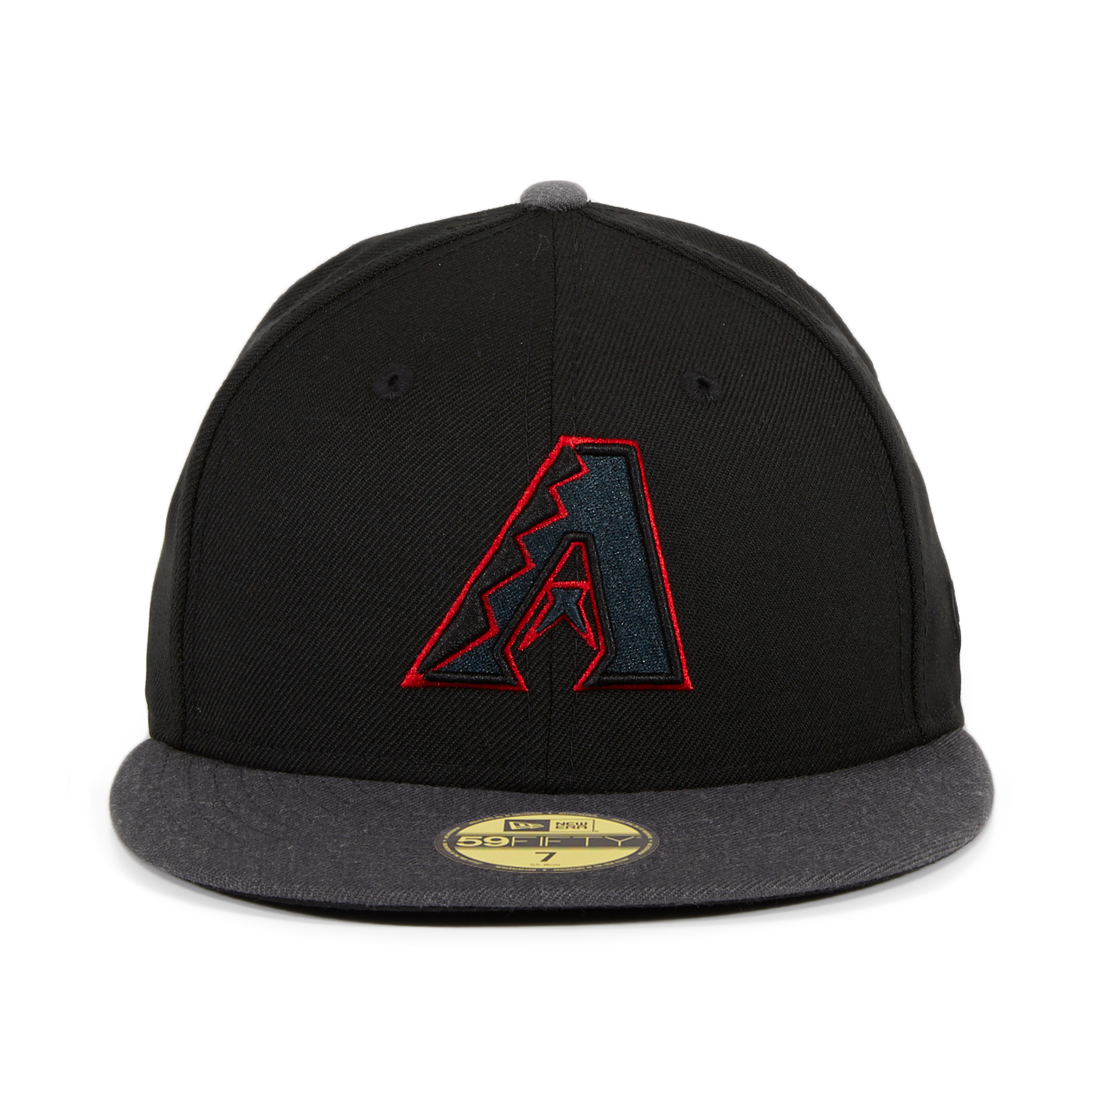 New Era 59Fifty Arizona Diamondbacks Fitted Hat - 2T Black, Graphite Heather, Red